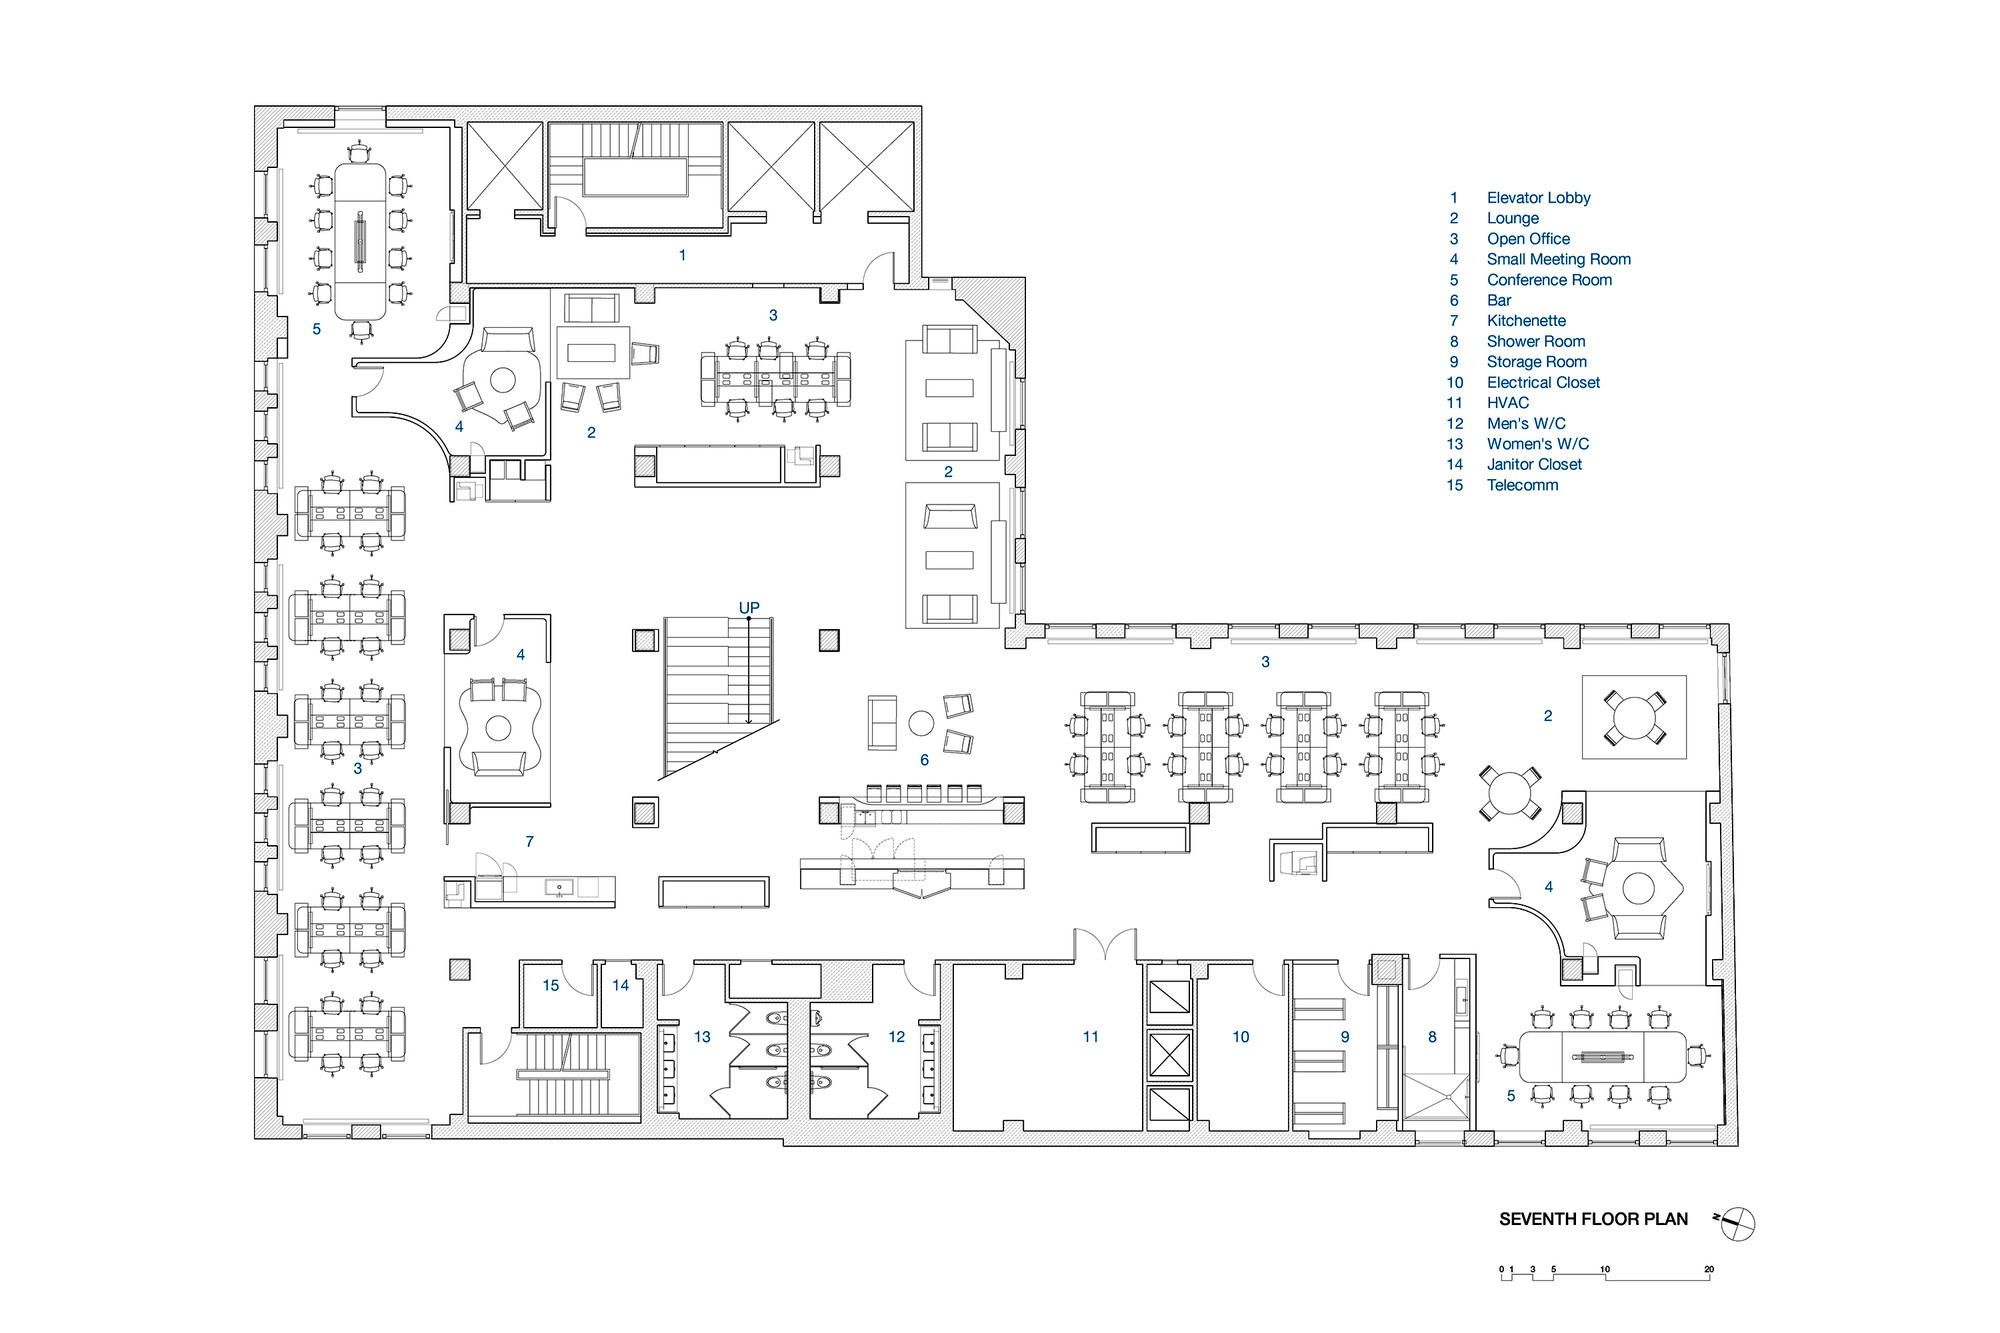 Awesome Electrical Floorplan Contemporary - Electrical Circuit ...